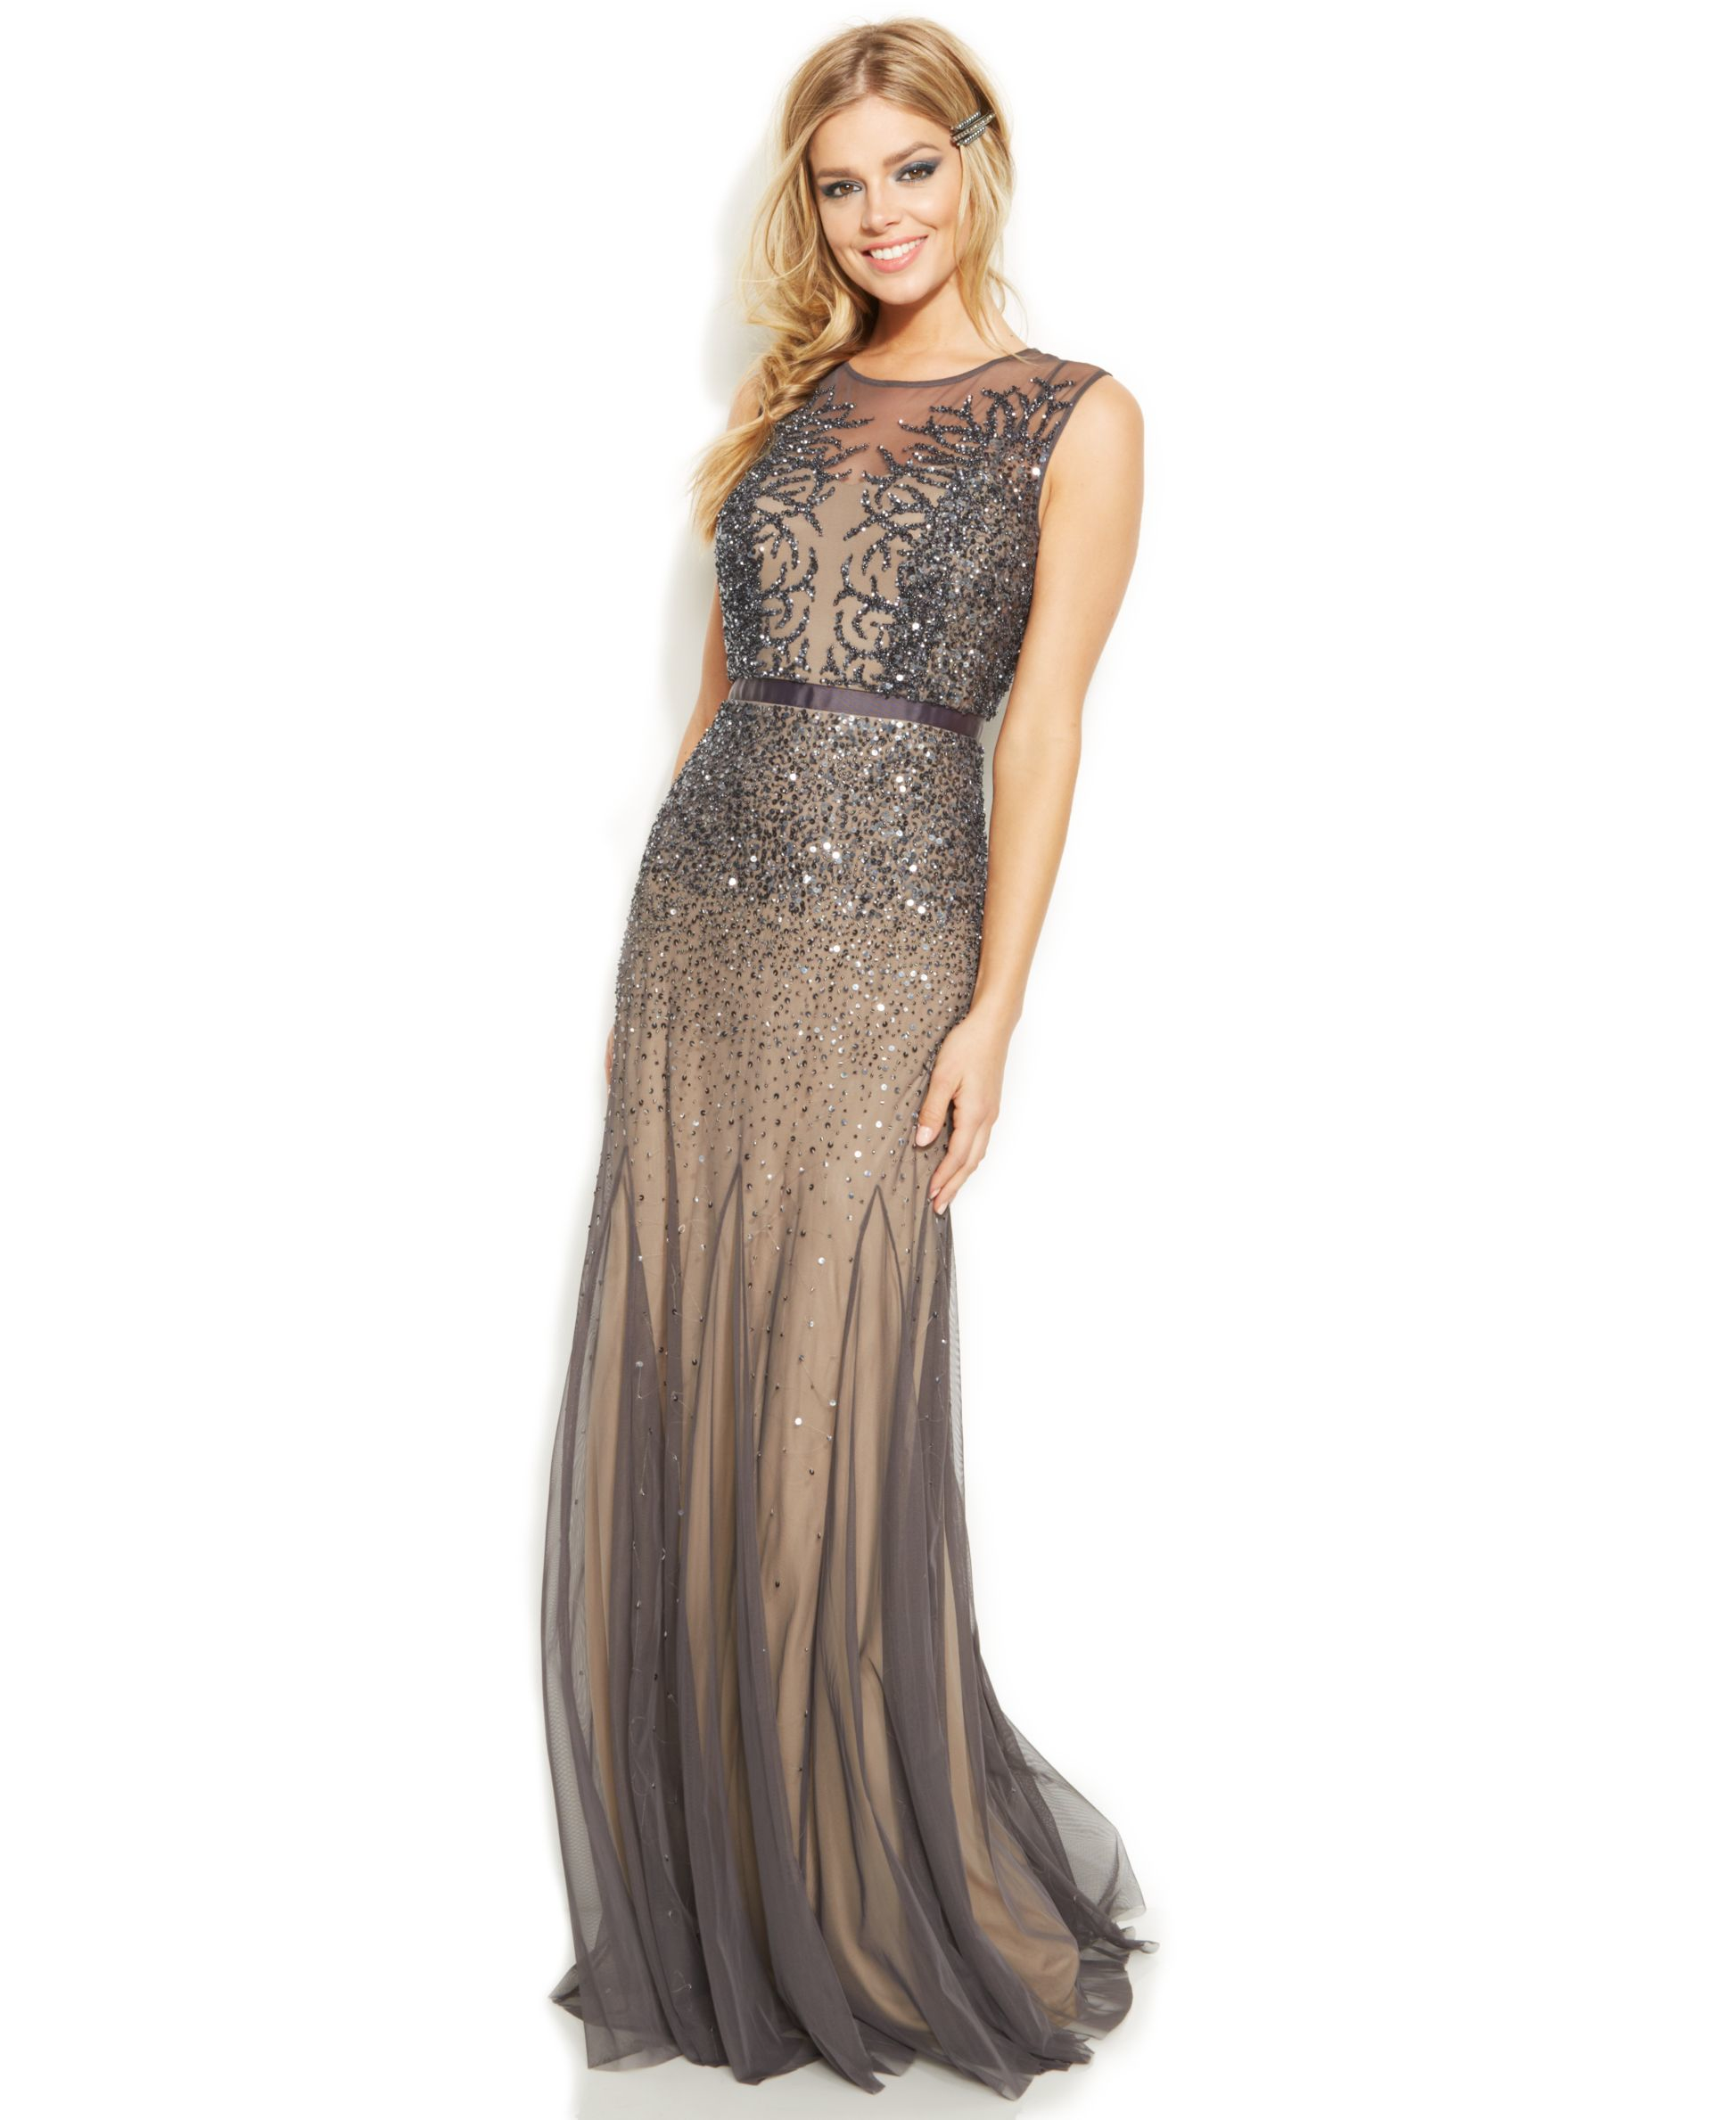 Lyst - Adrianna Papell Petite Sleeveless Beaded Illusion Gown in Gray